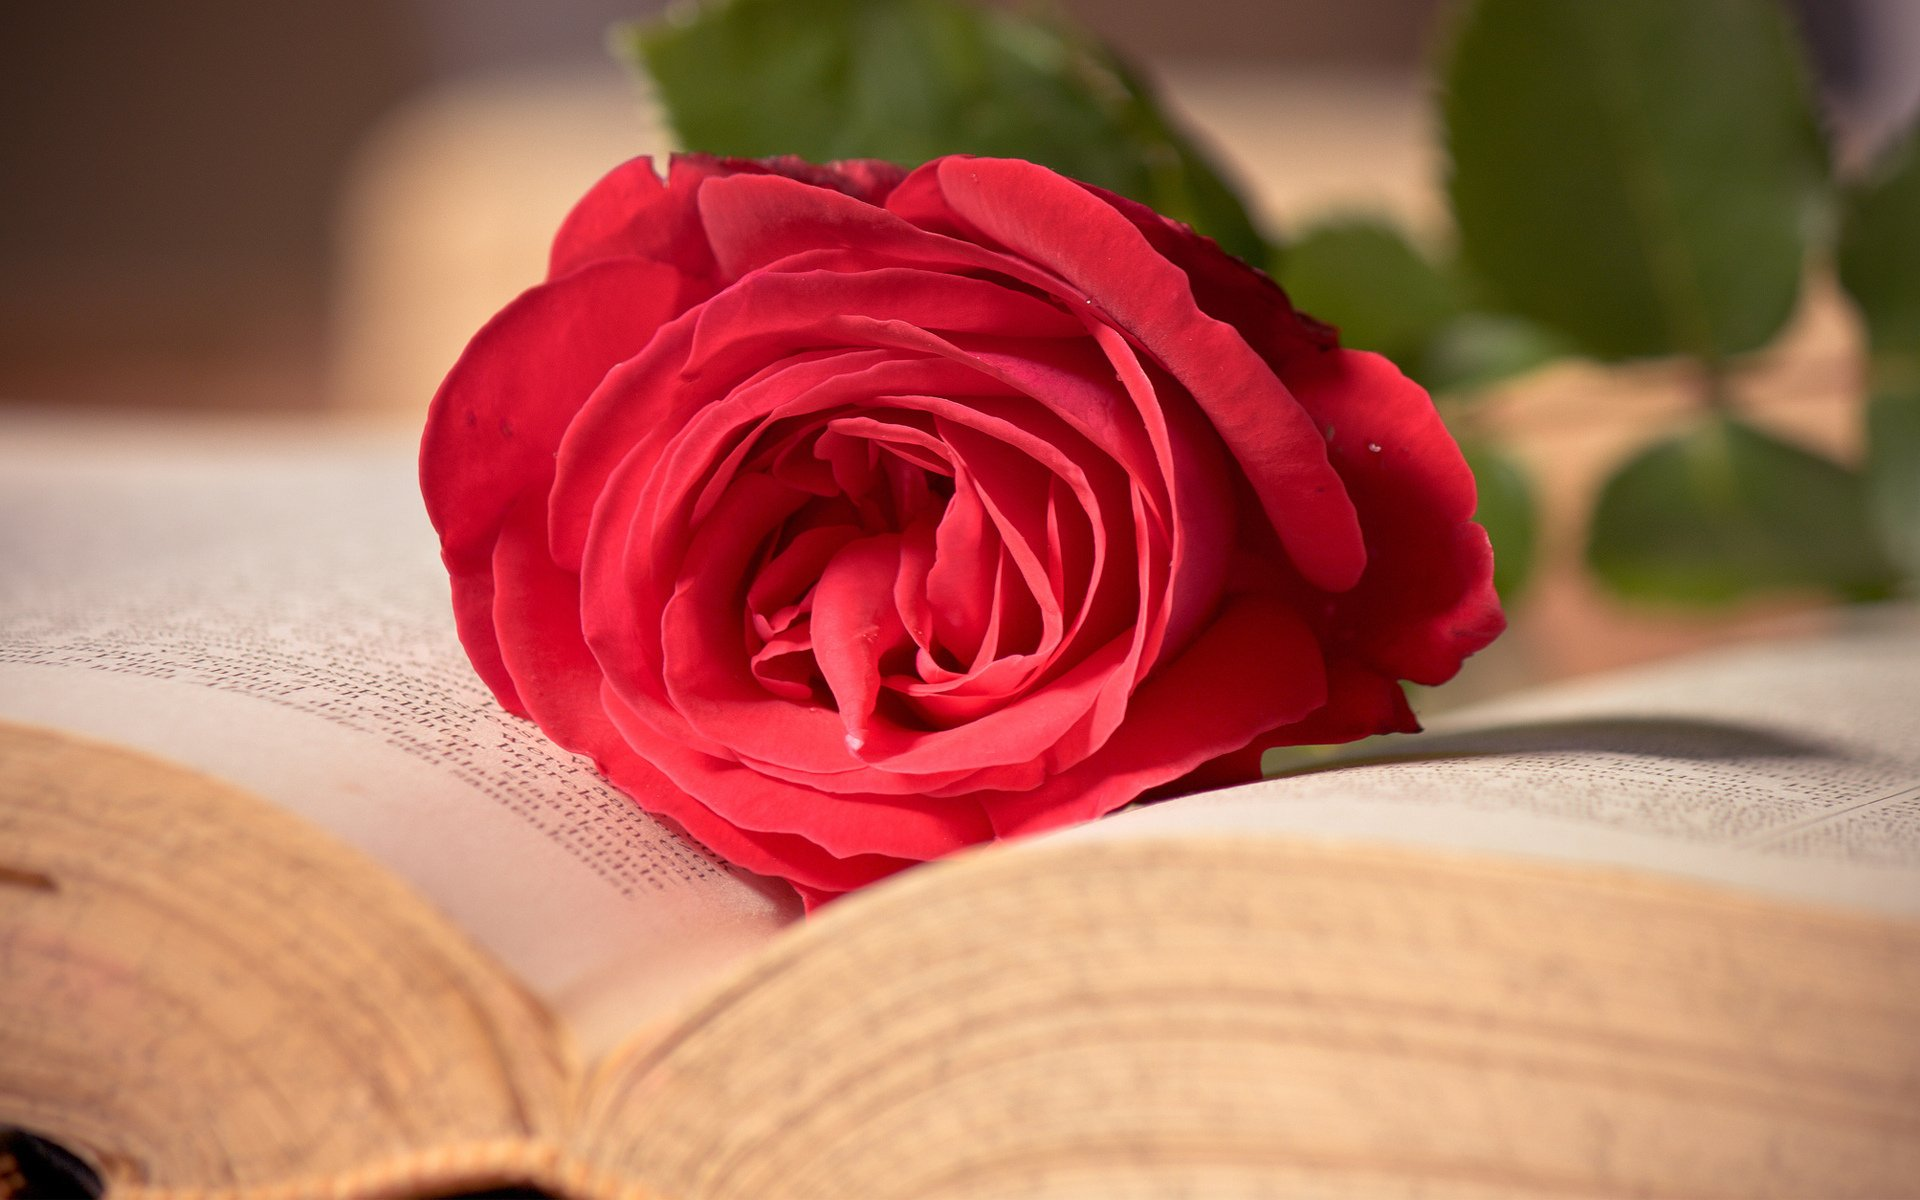 Man Made - Book Flower Rose Mood Love Romantic Wallpaper